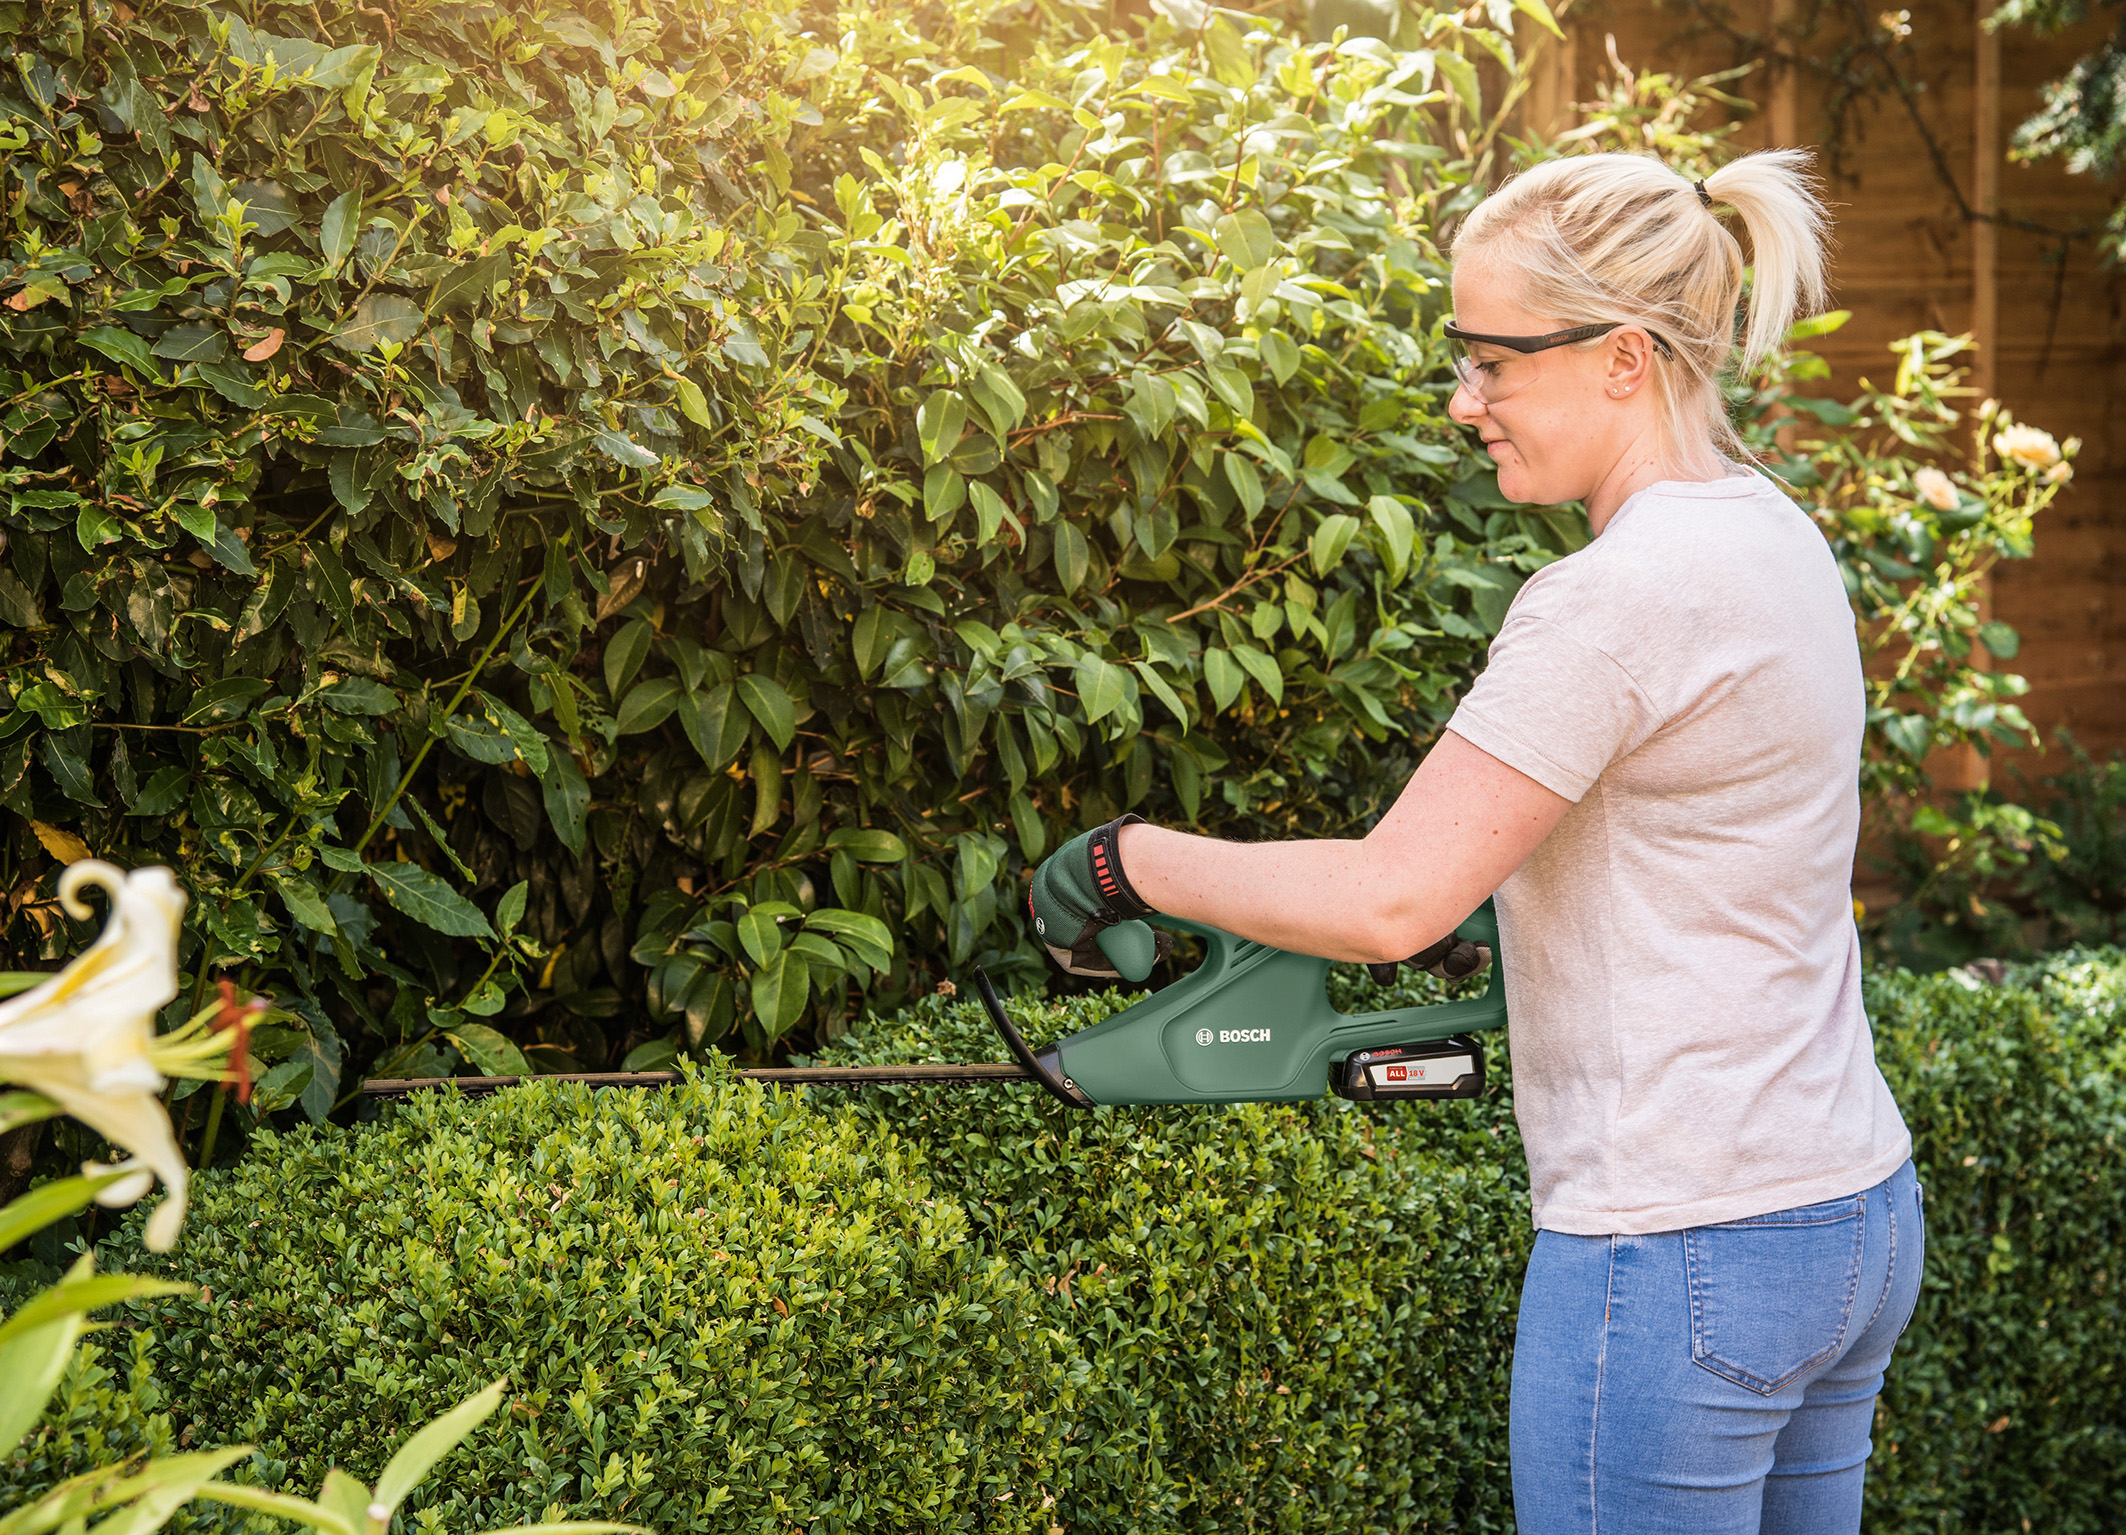 Controlled, comfortable and efficient cutting: The new 18 volt cordless hedgecutter from Bosch